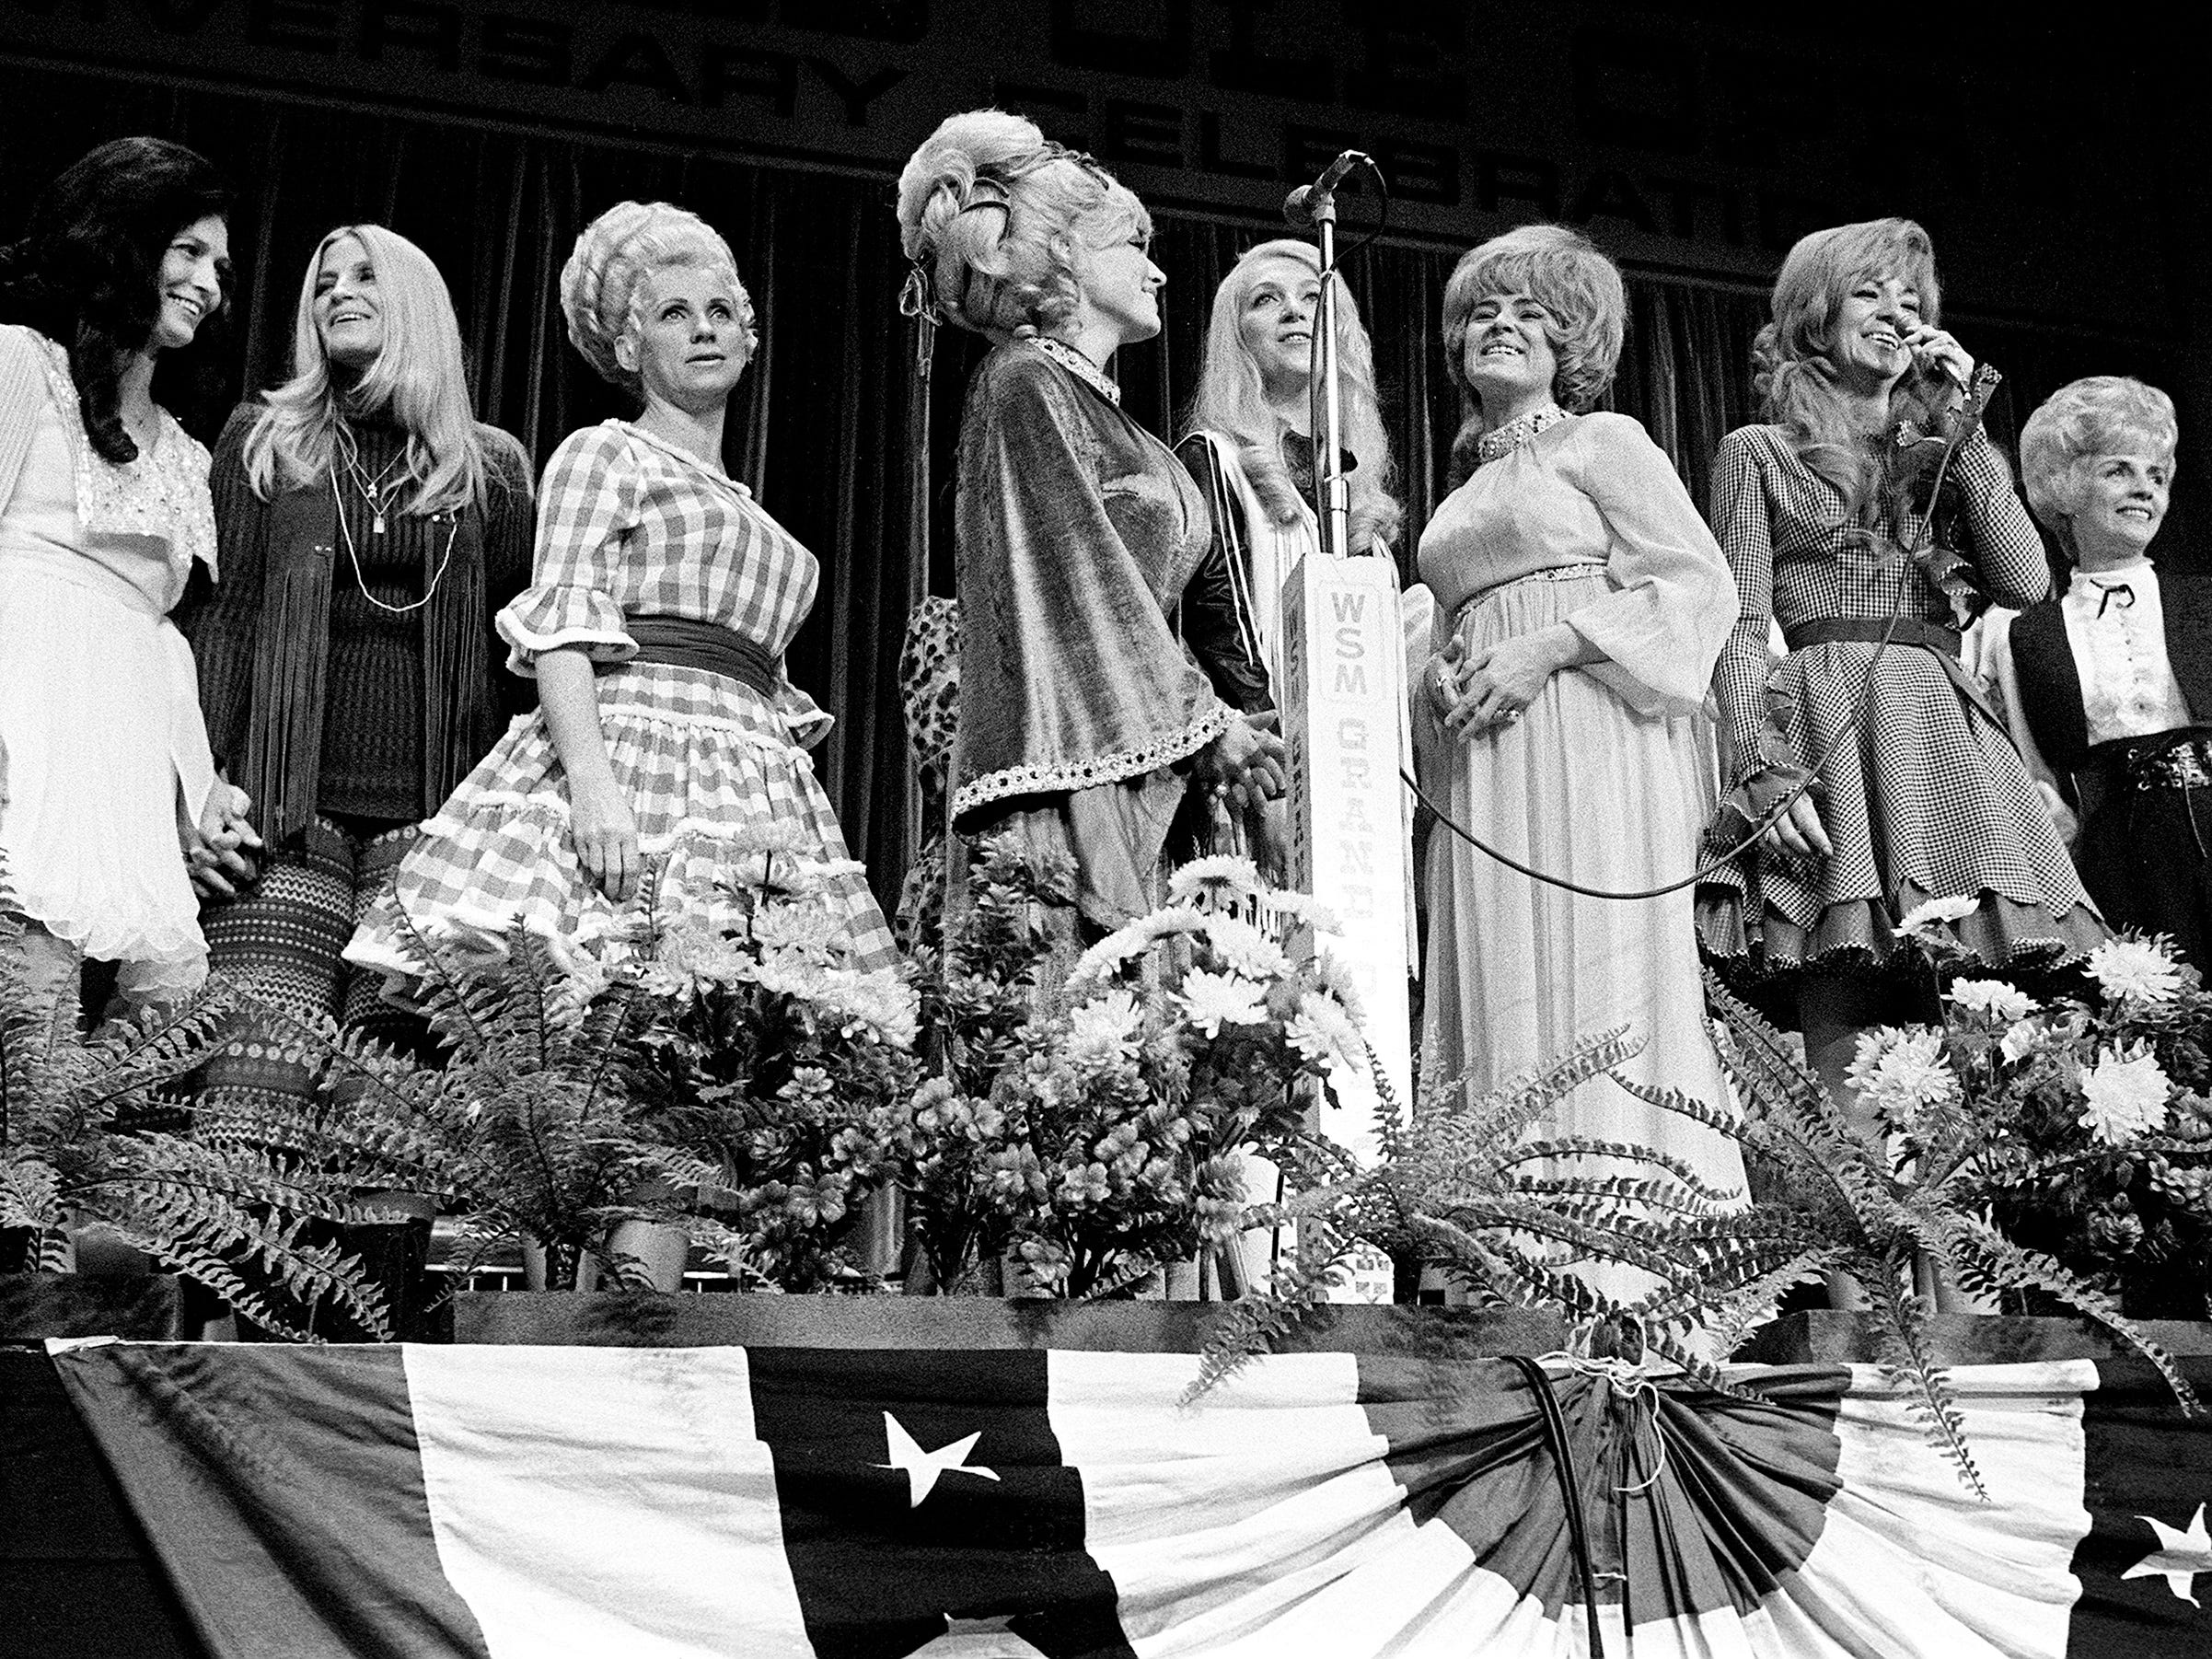 """As Grand Ole Opry star Dottie West, third from right, sings """"Born To Be A Country Girl"""" on the WSM Luncheon Spectacular on Oct. 15, 1970, all the other Opry girls filter out on the stage to help. They are Loretta Lynn, left, Skeeter Davis, Mrs. Ben Smathers, Dolly Parton, Jeanie Seely, Margie Bowes, Del Wood (behind Bowes), Miss West, Minnie Pearl (behind West), Marion Worth and Jean Shepard."""